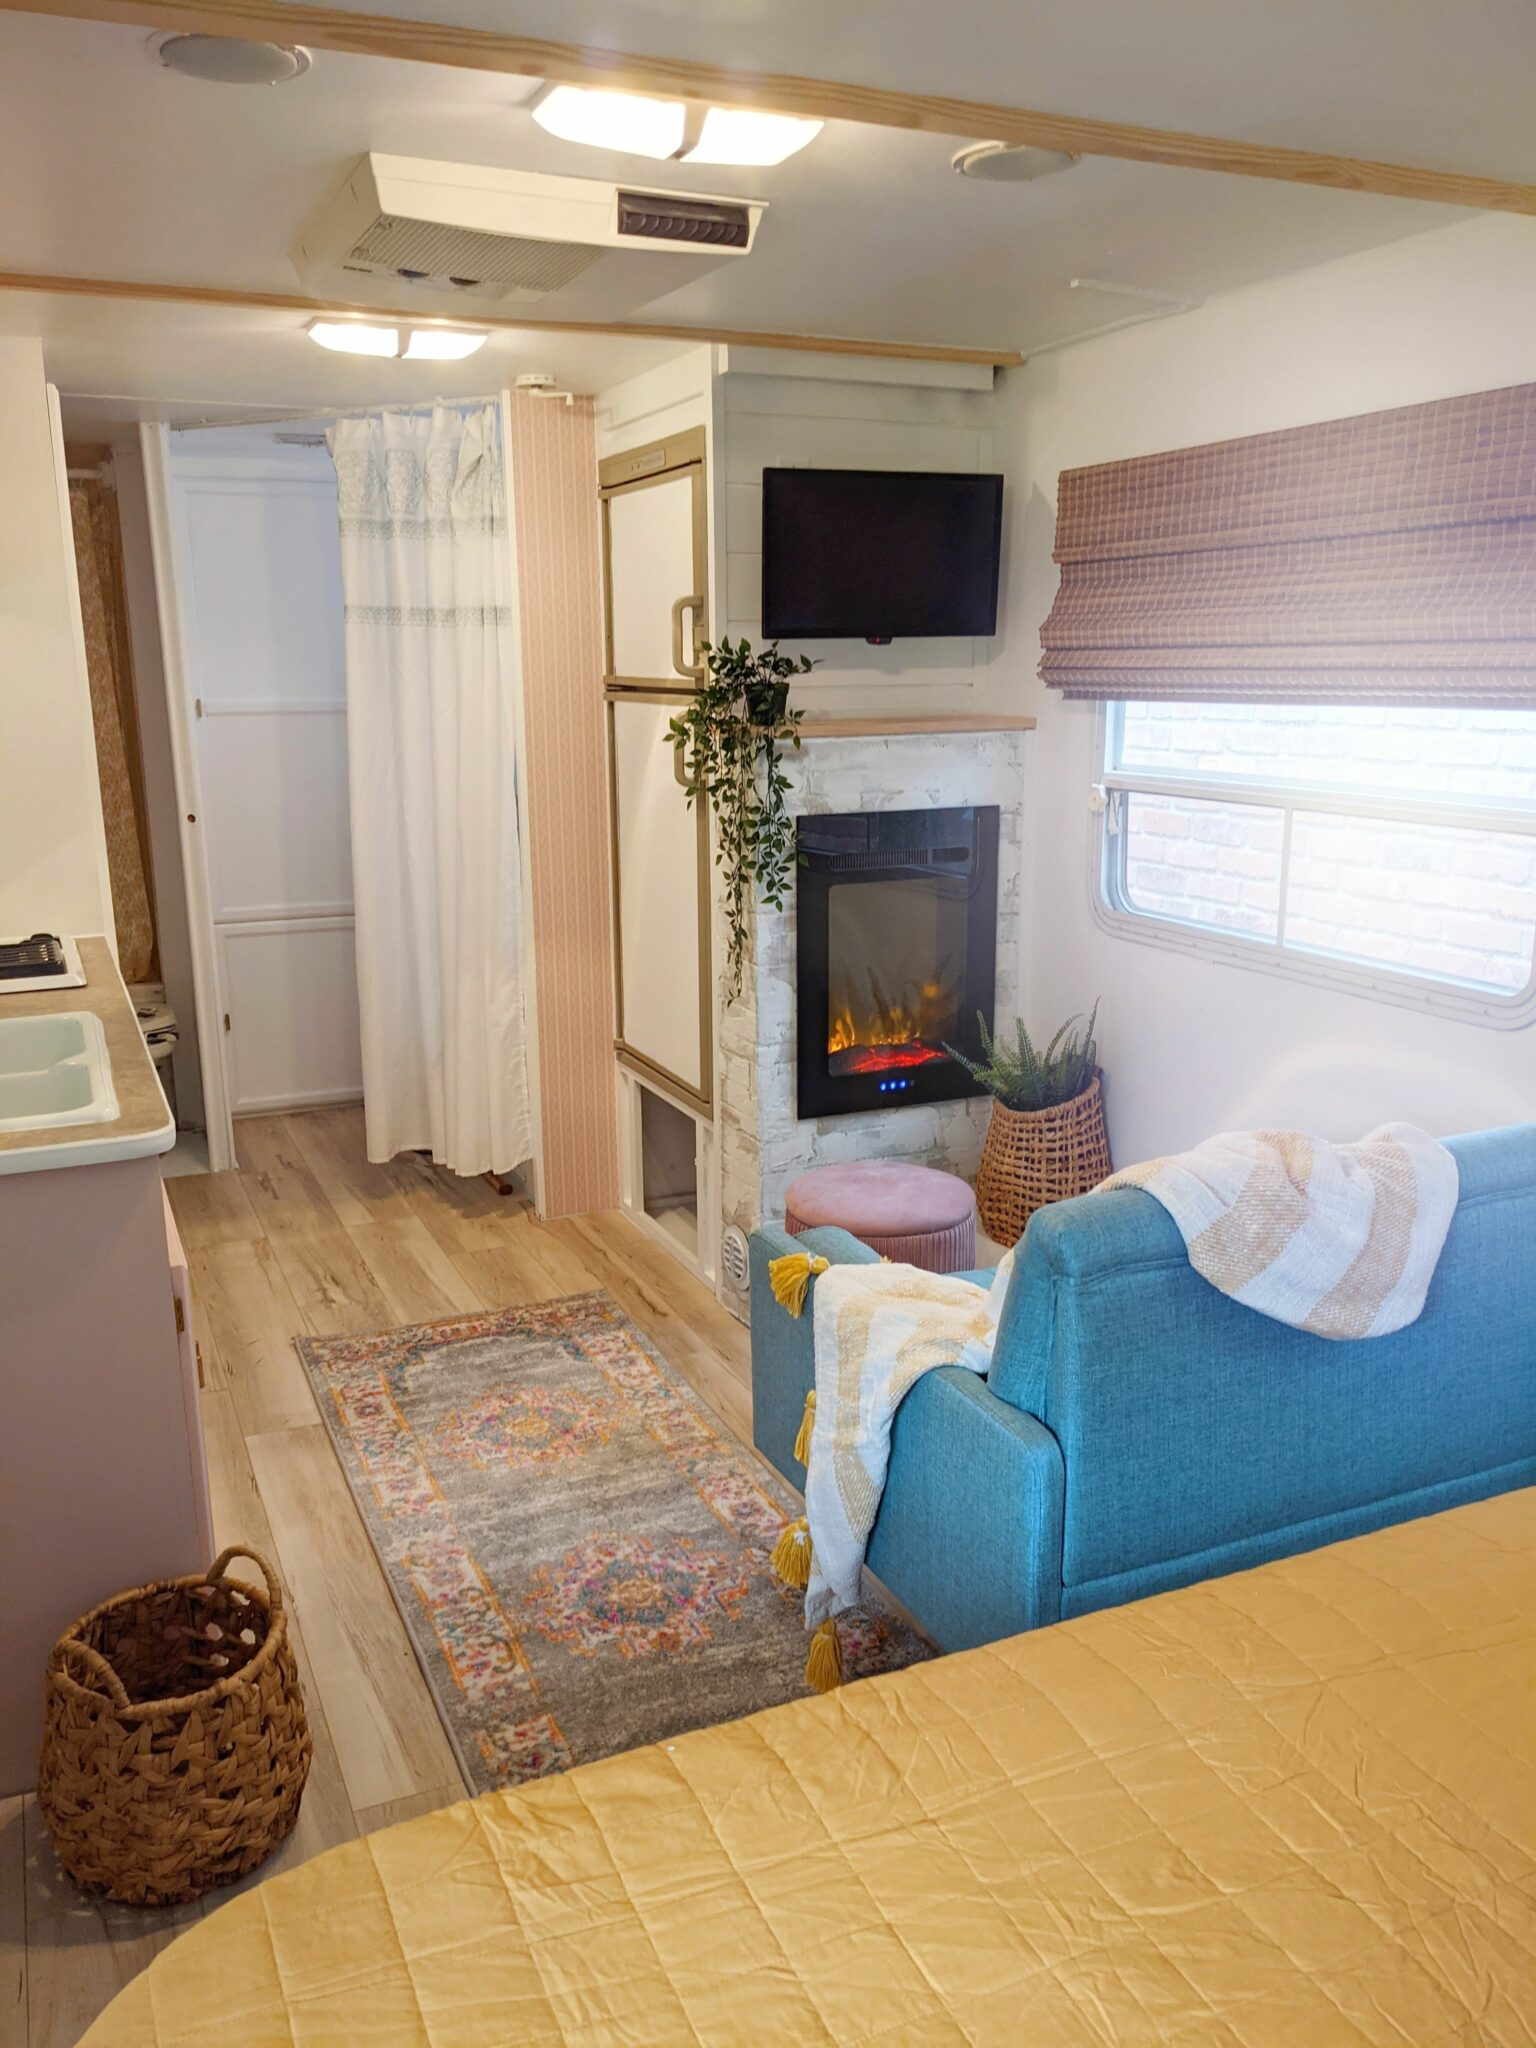 Renovation Progress and Sources for the Trail Cruiser RV All Things with Purpose Sarah Lemp